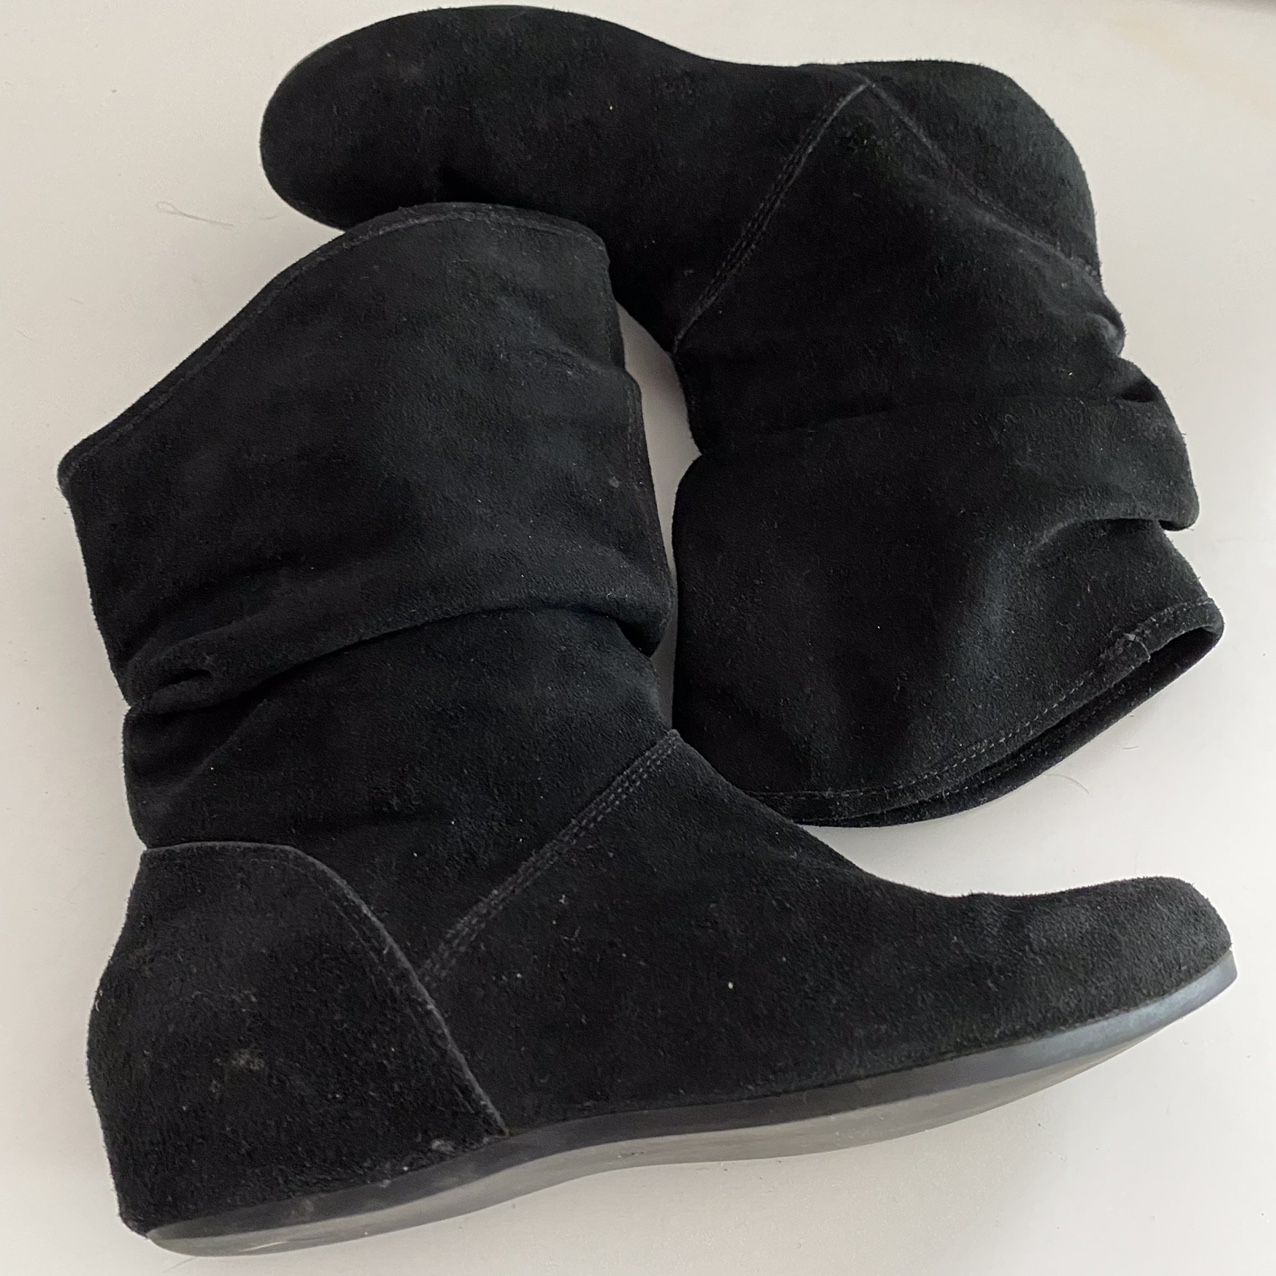 Product Image 1 - Steve Madden Low Ankle Boots